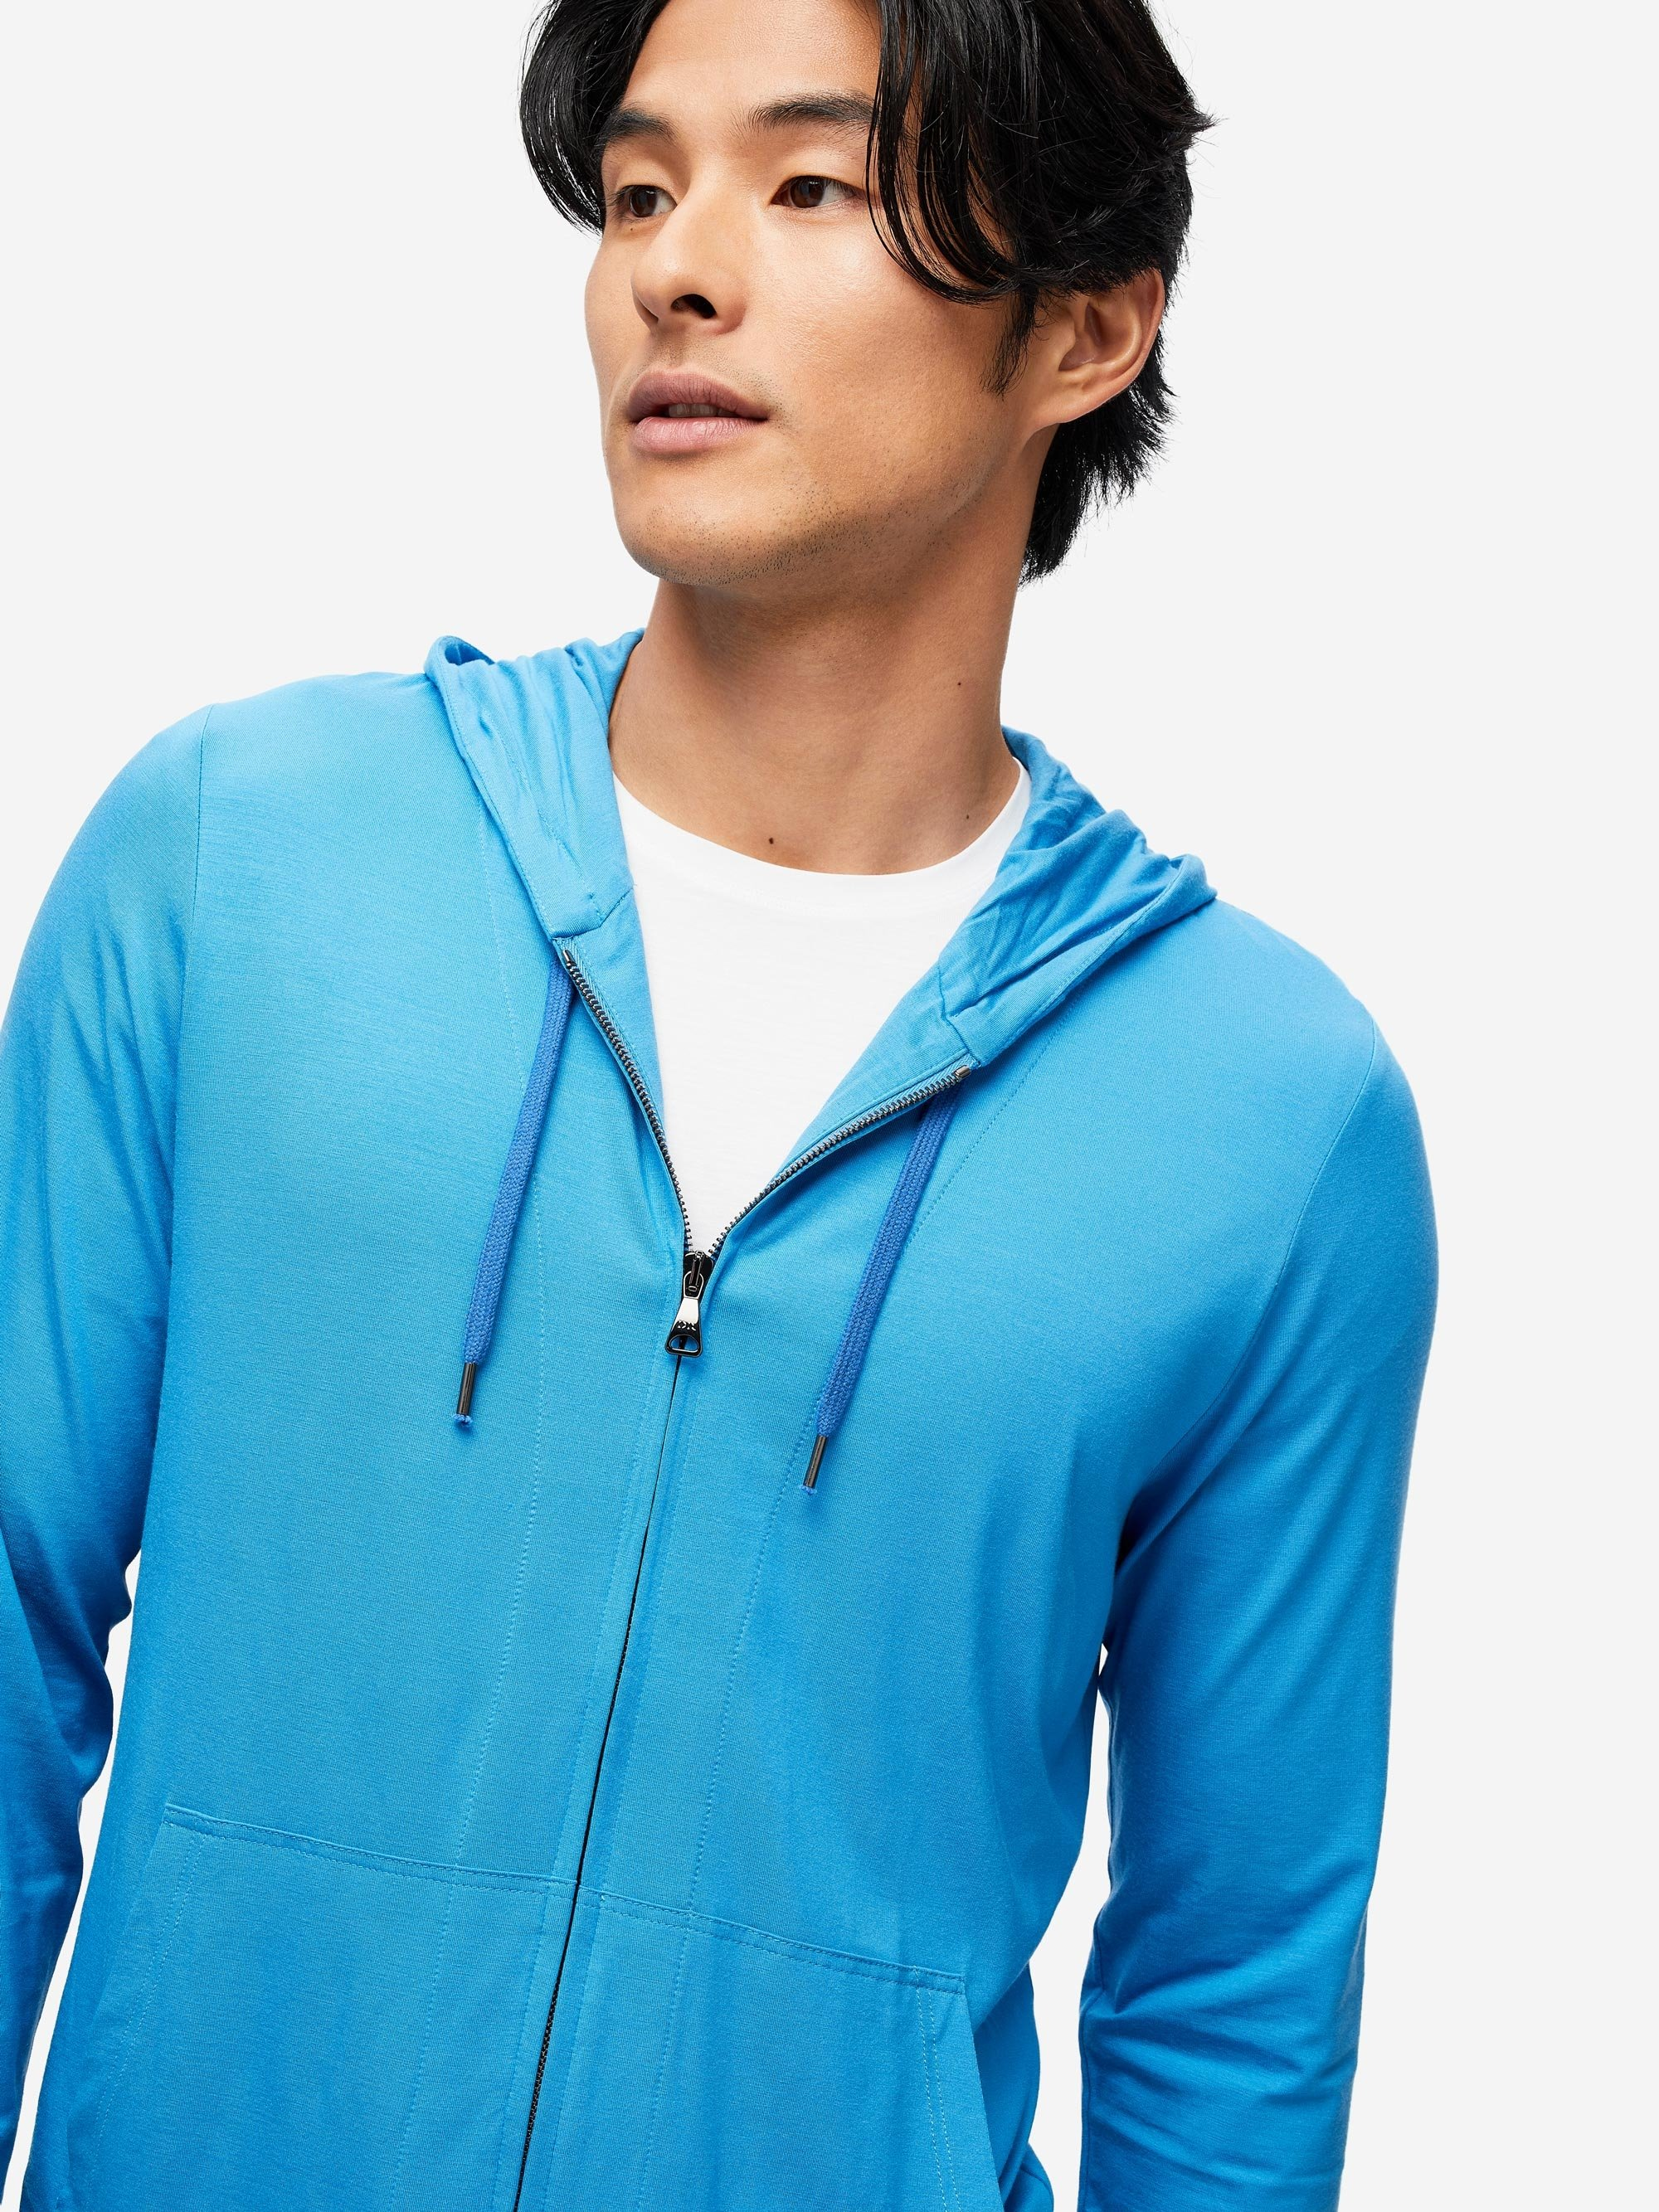 Men's Jersey Hoodie Basel 6 Micro Modal Stretch Blue